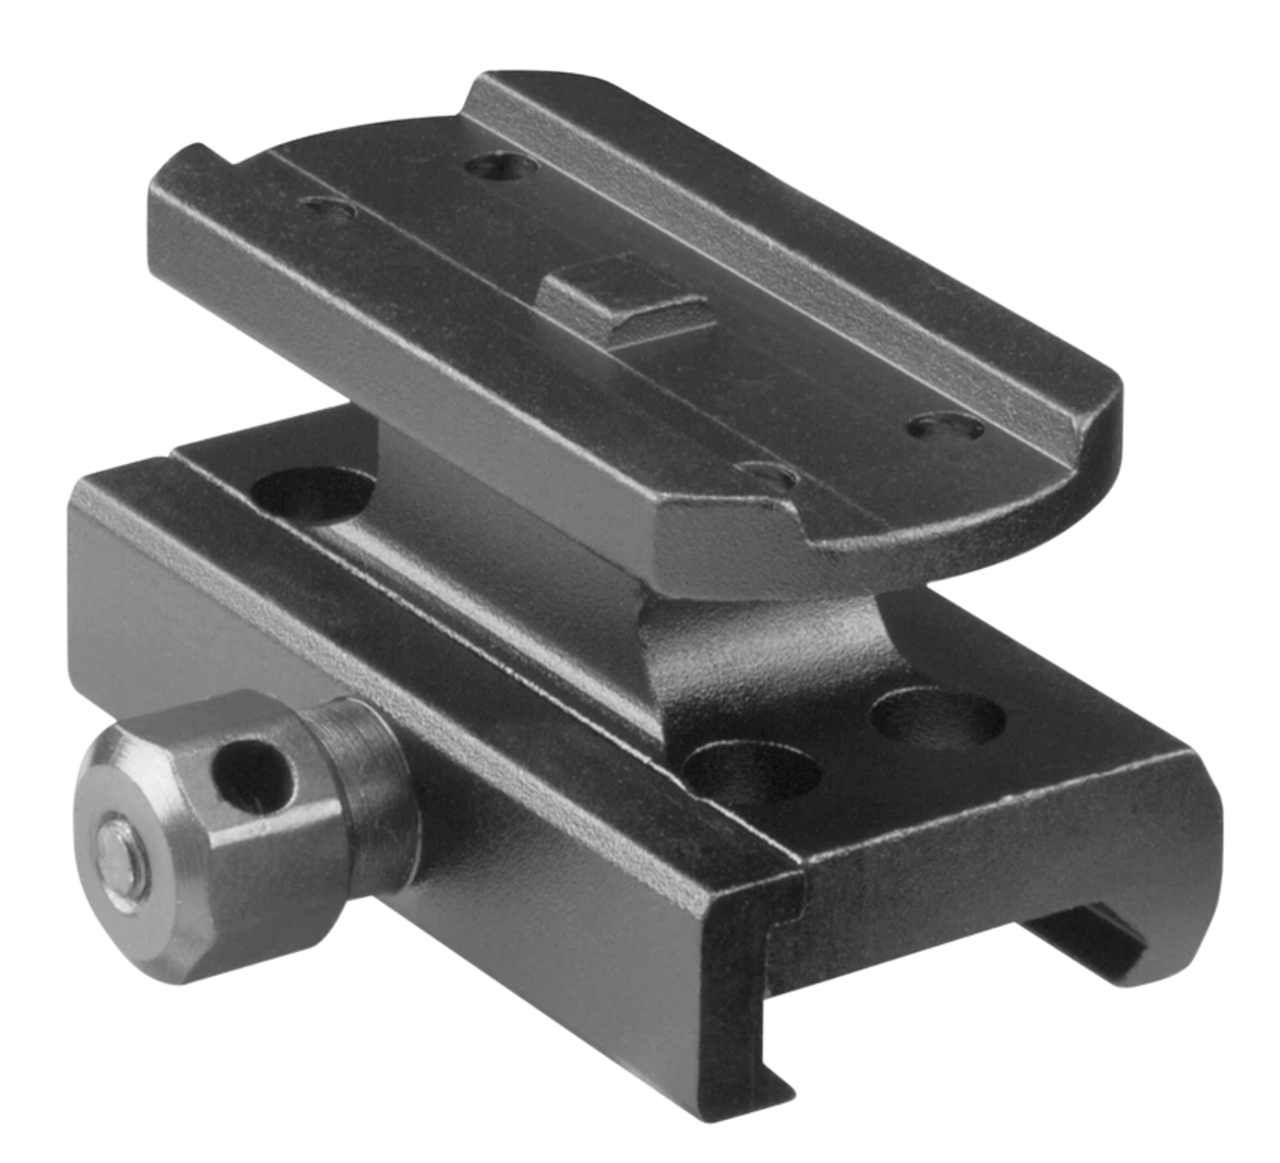 Aim Sports T1 Mount, Aimsports Mt070     Ti Mount Absolute  Co-witness